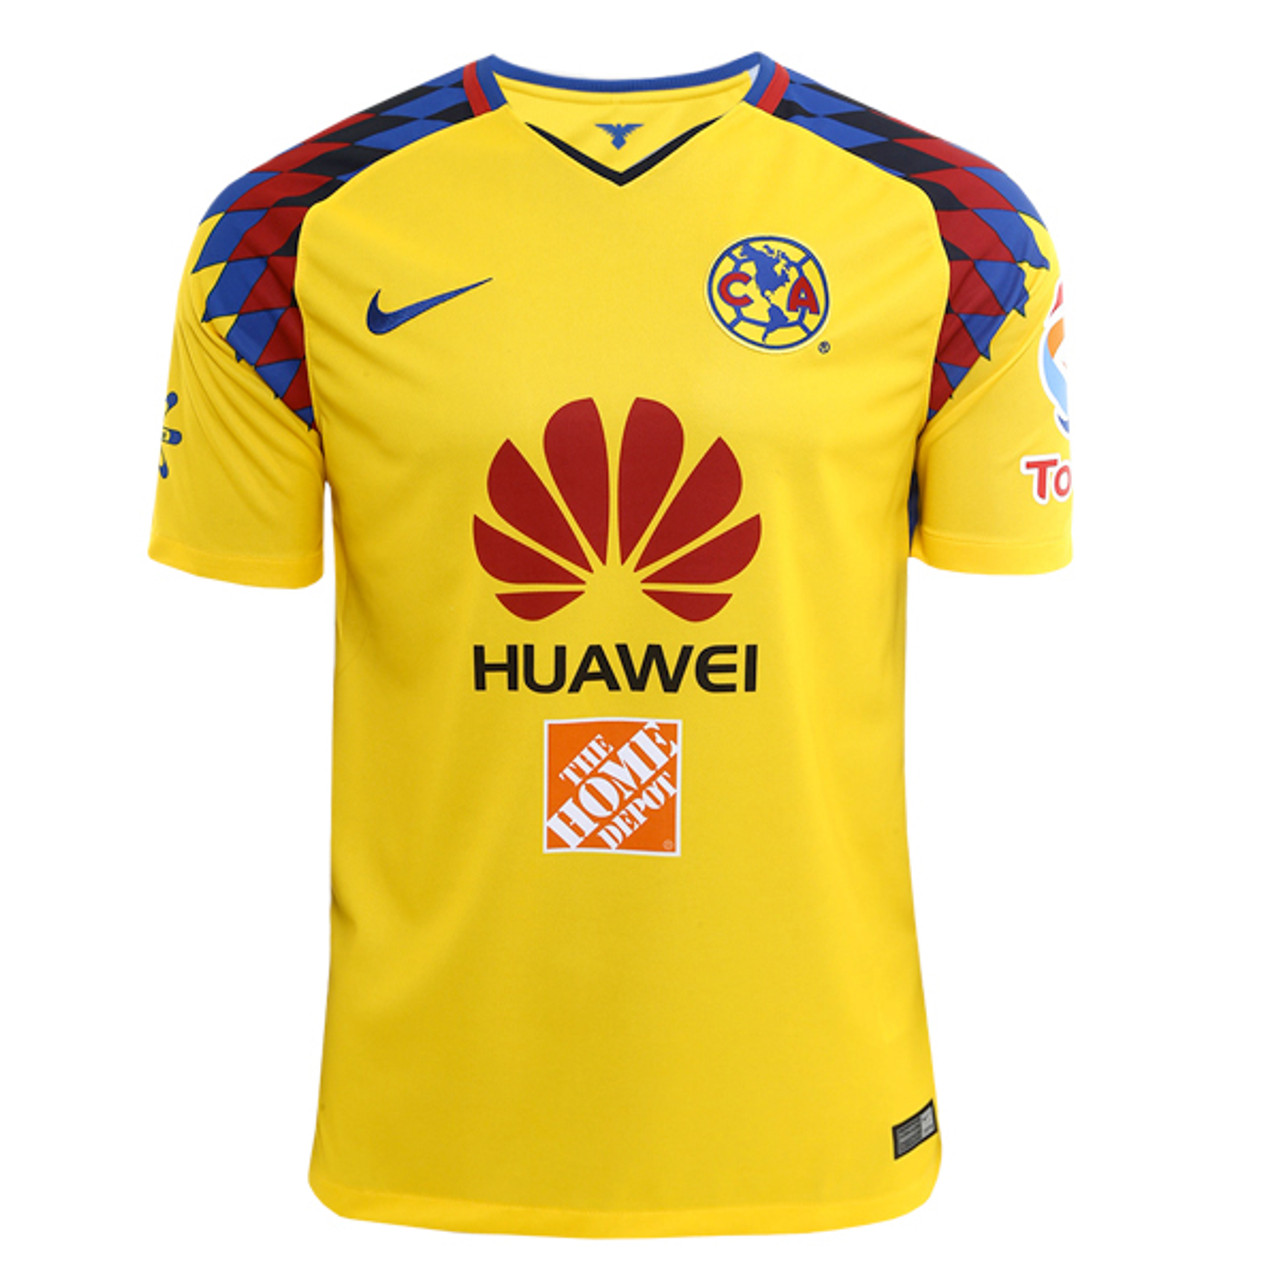 95ade8a08 NIKE CLUB AMERICA 2018 BOYS 3RD JERSEY YELLOW - Soccer Plus